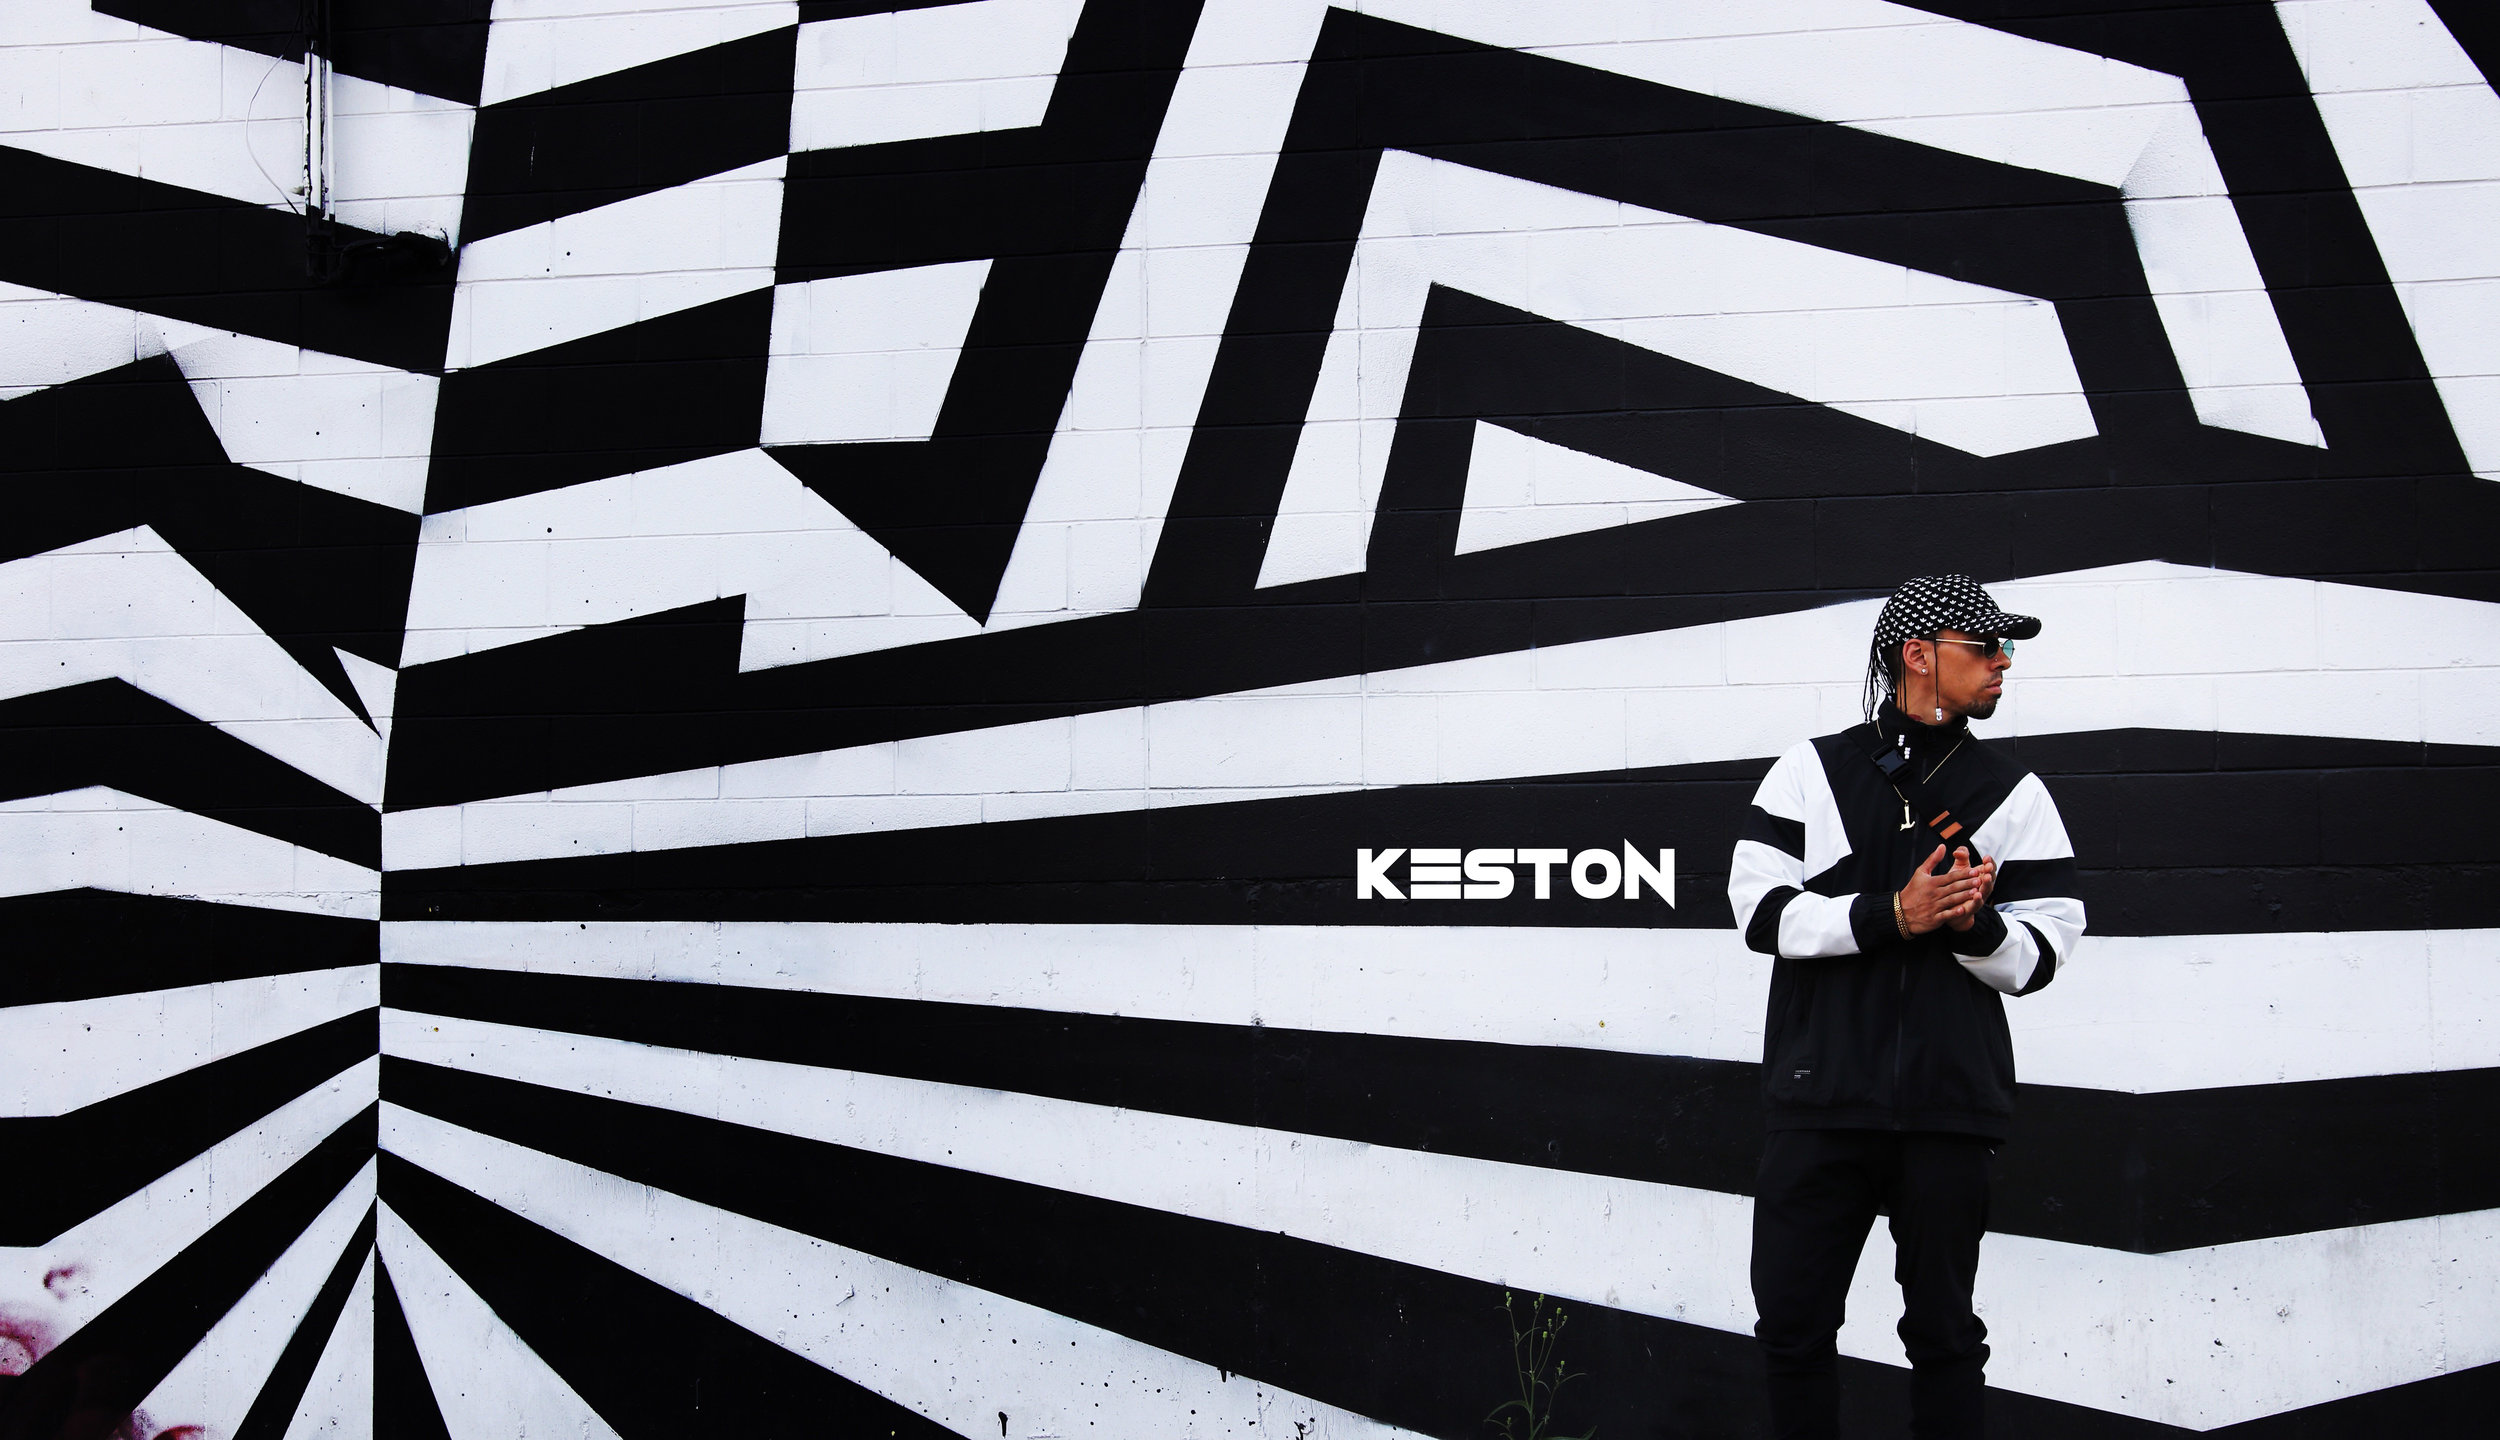 Keston Black & White.jpg